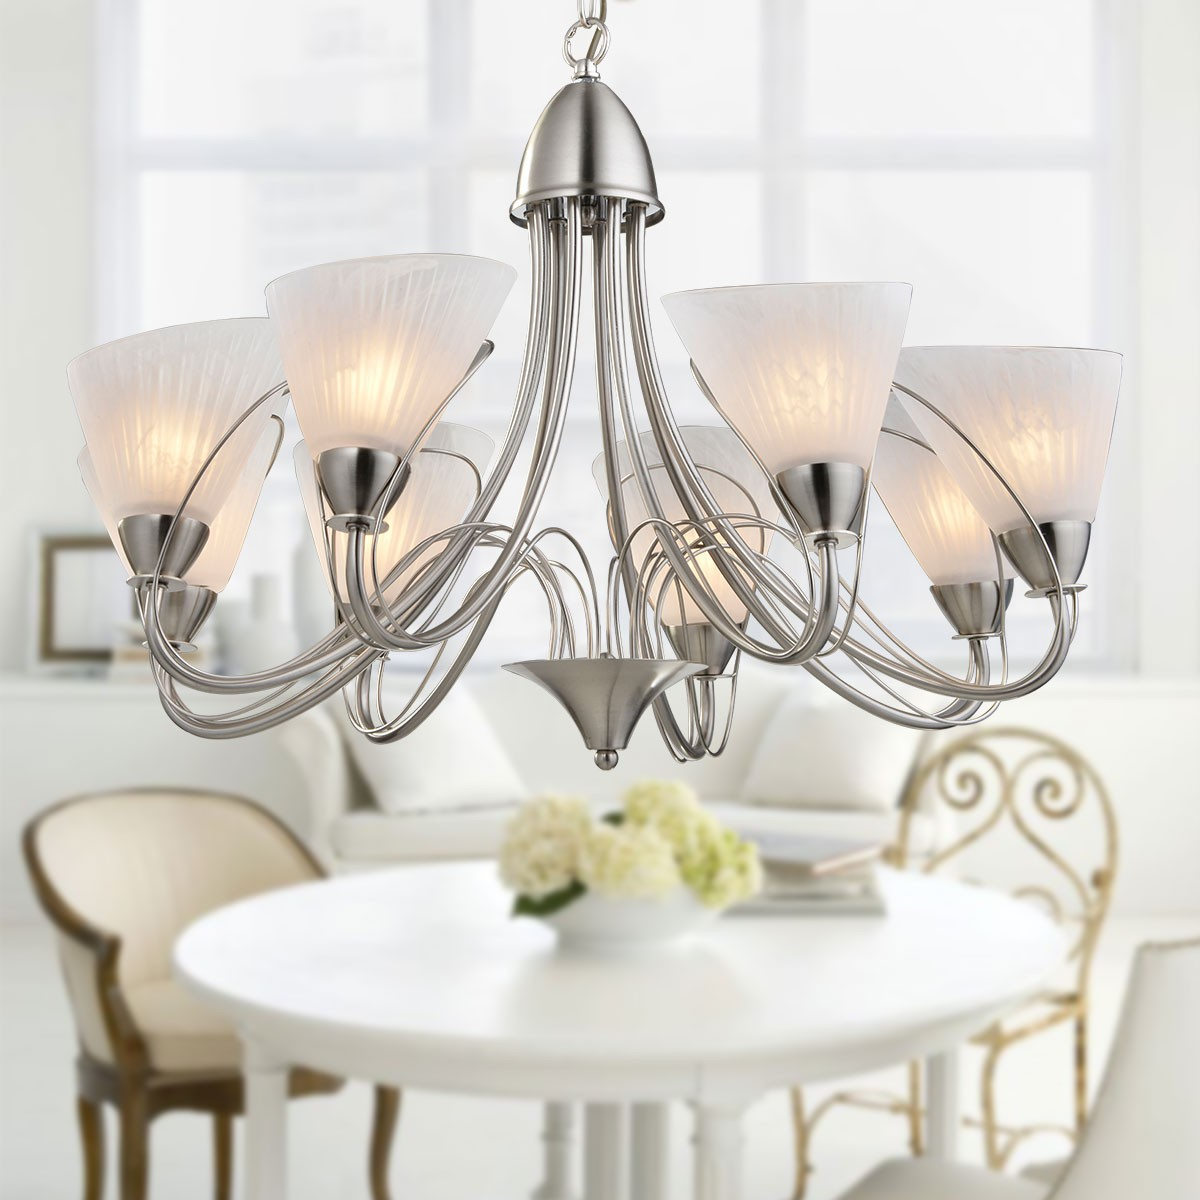 8 Light Silver Iron Modern Chandelier With Glass Shades Hkp31262